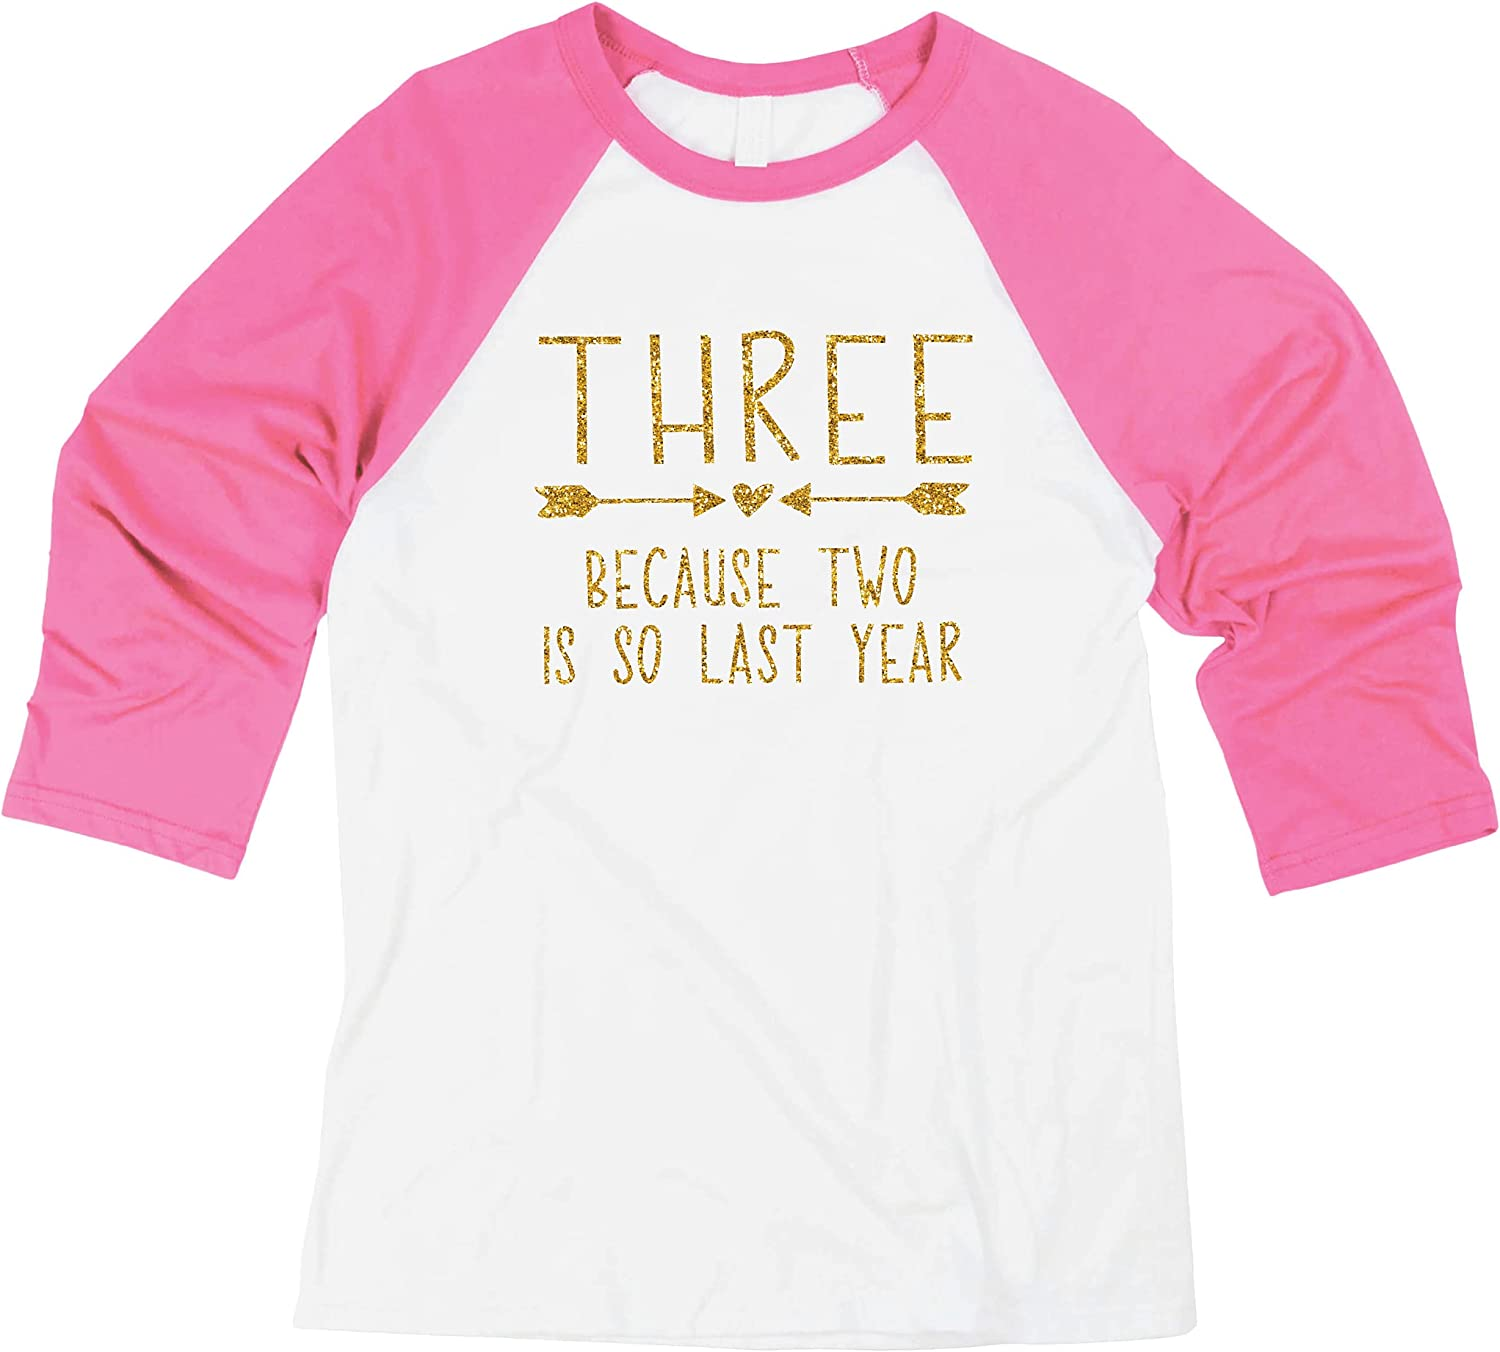 Bump and Beyond Designs Third Birthday Girl Shirt Three Year Old Girl Birthday Outfit